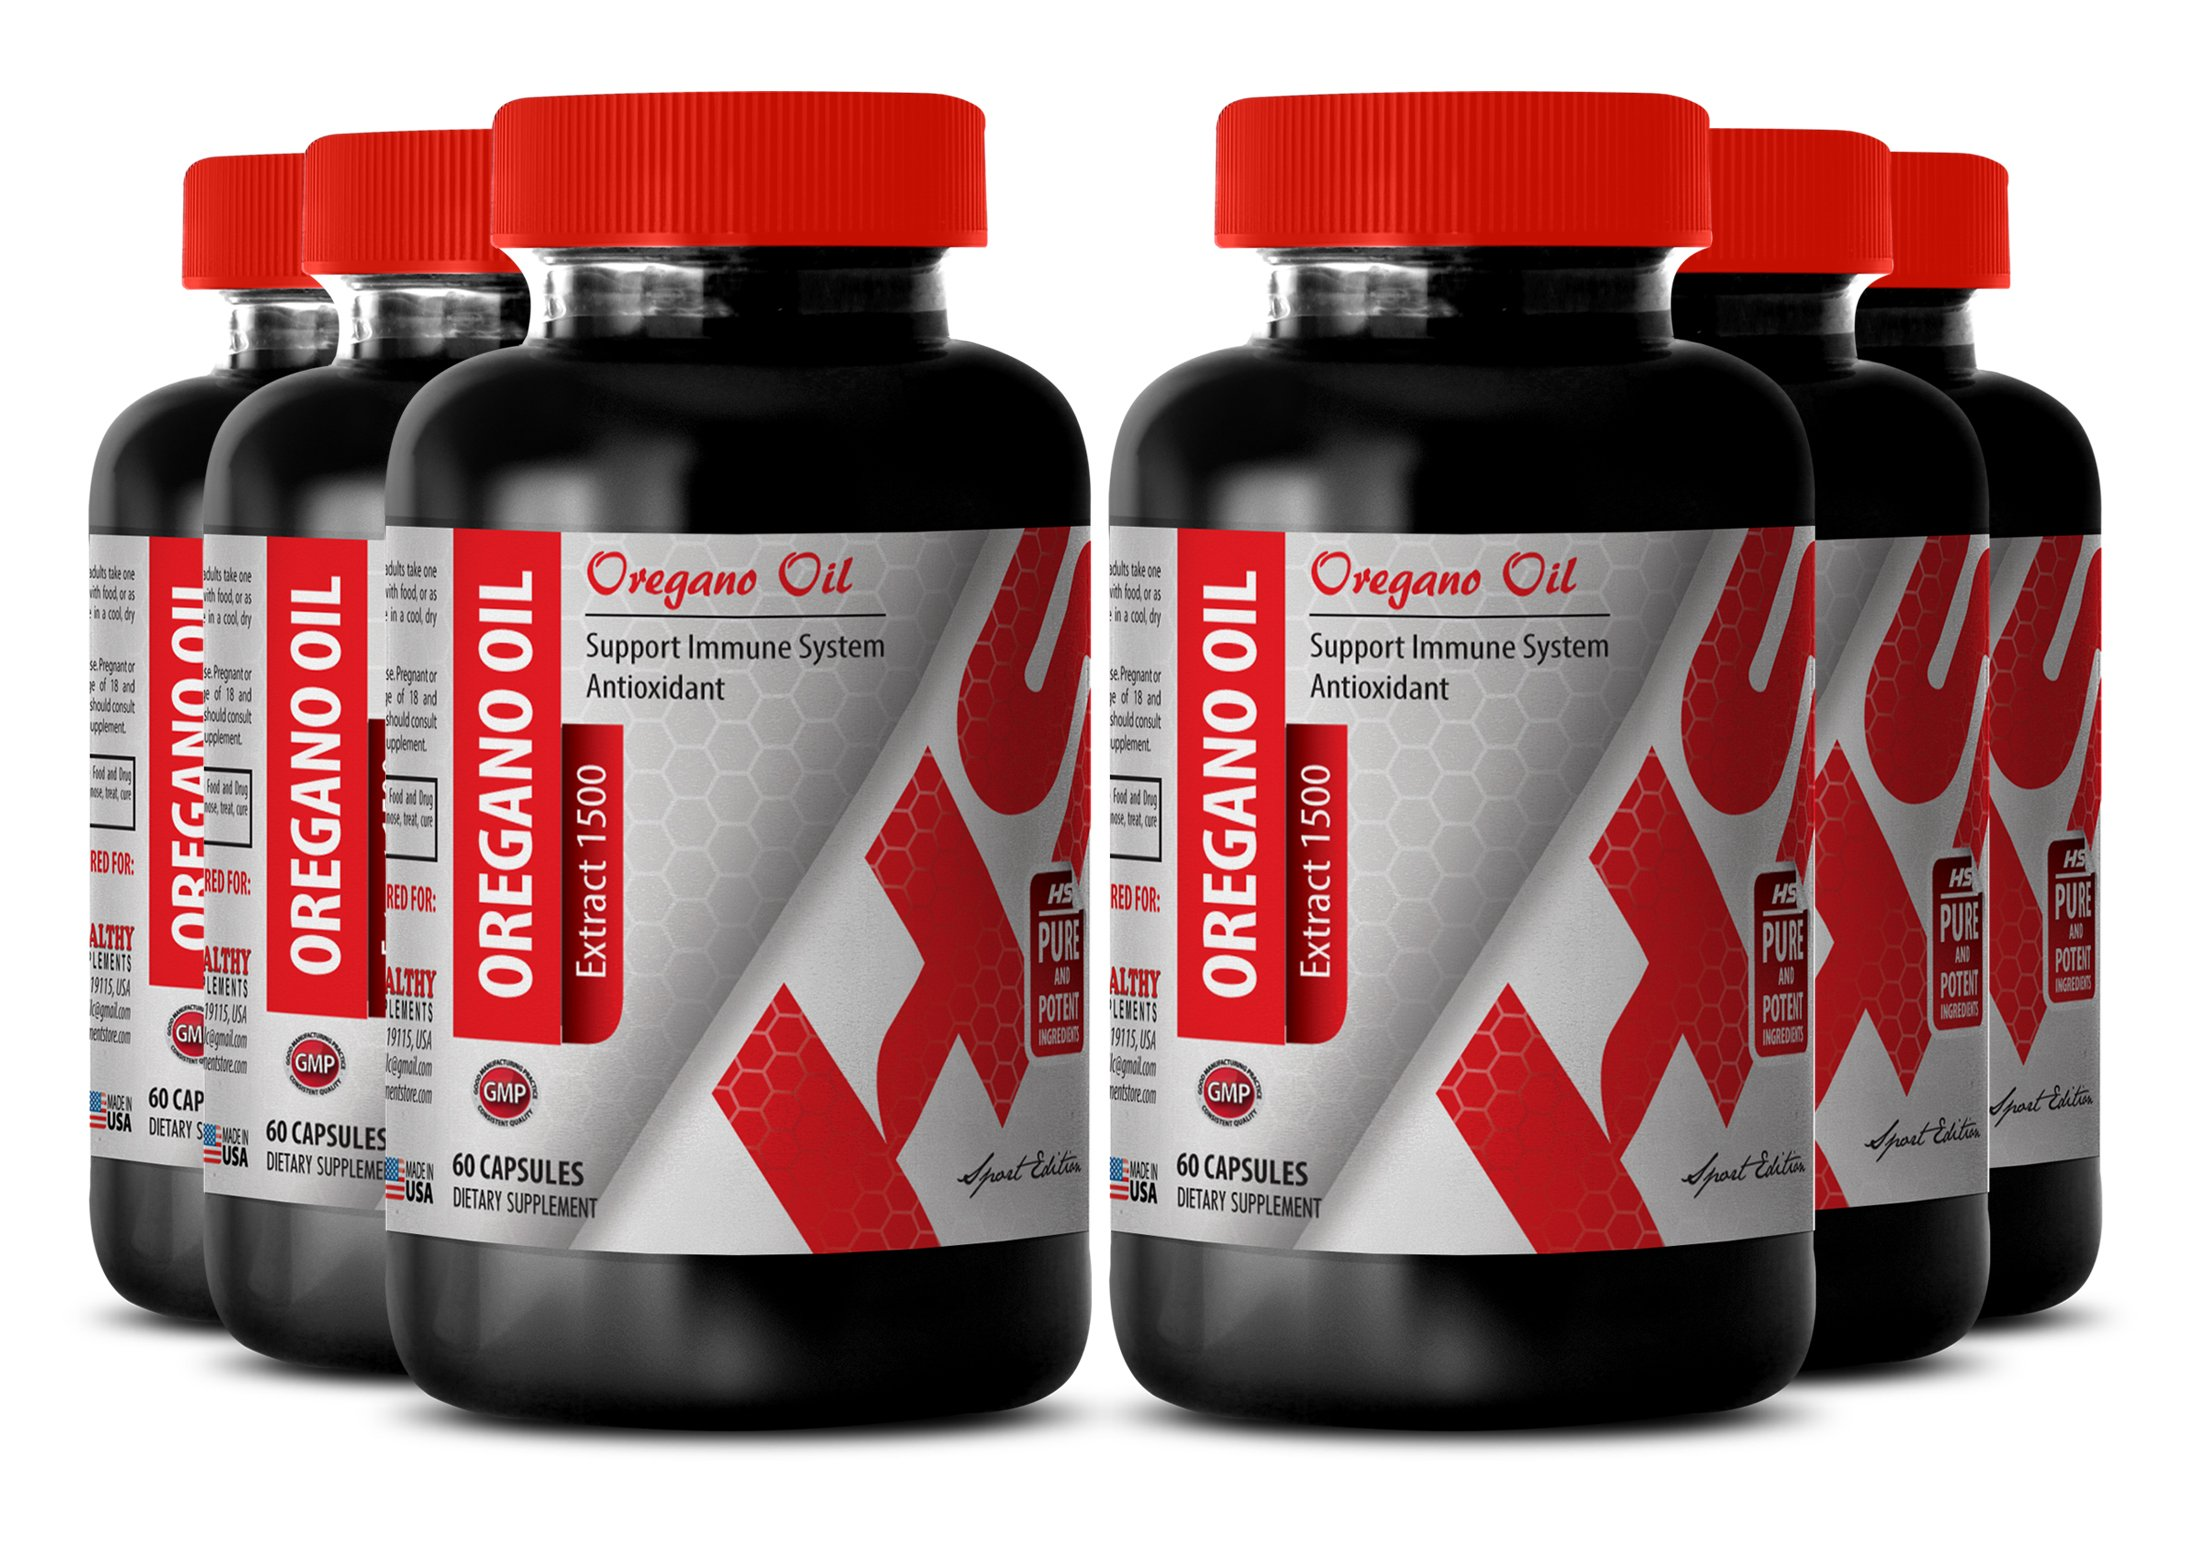 Oregano extract capsules - NATURAL OIL OF OREGANO EXTRACT 1500 MG - promote weight loss (6 Bottles)